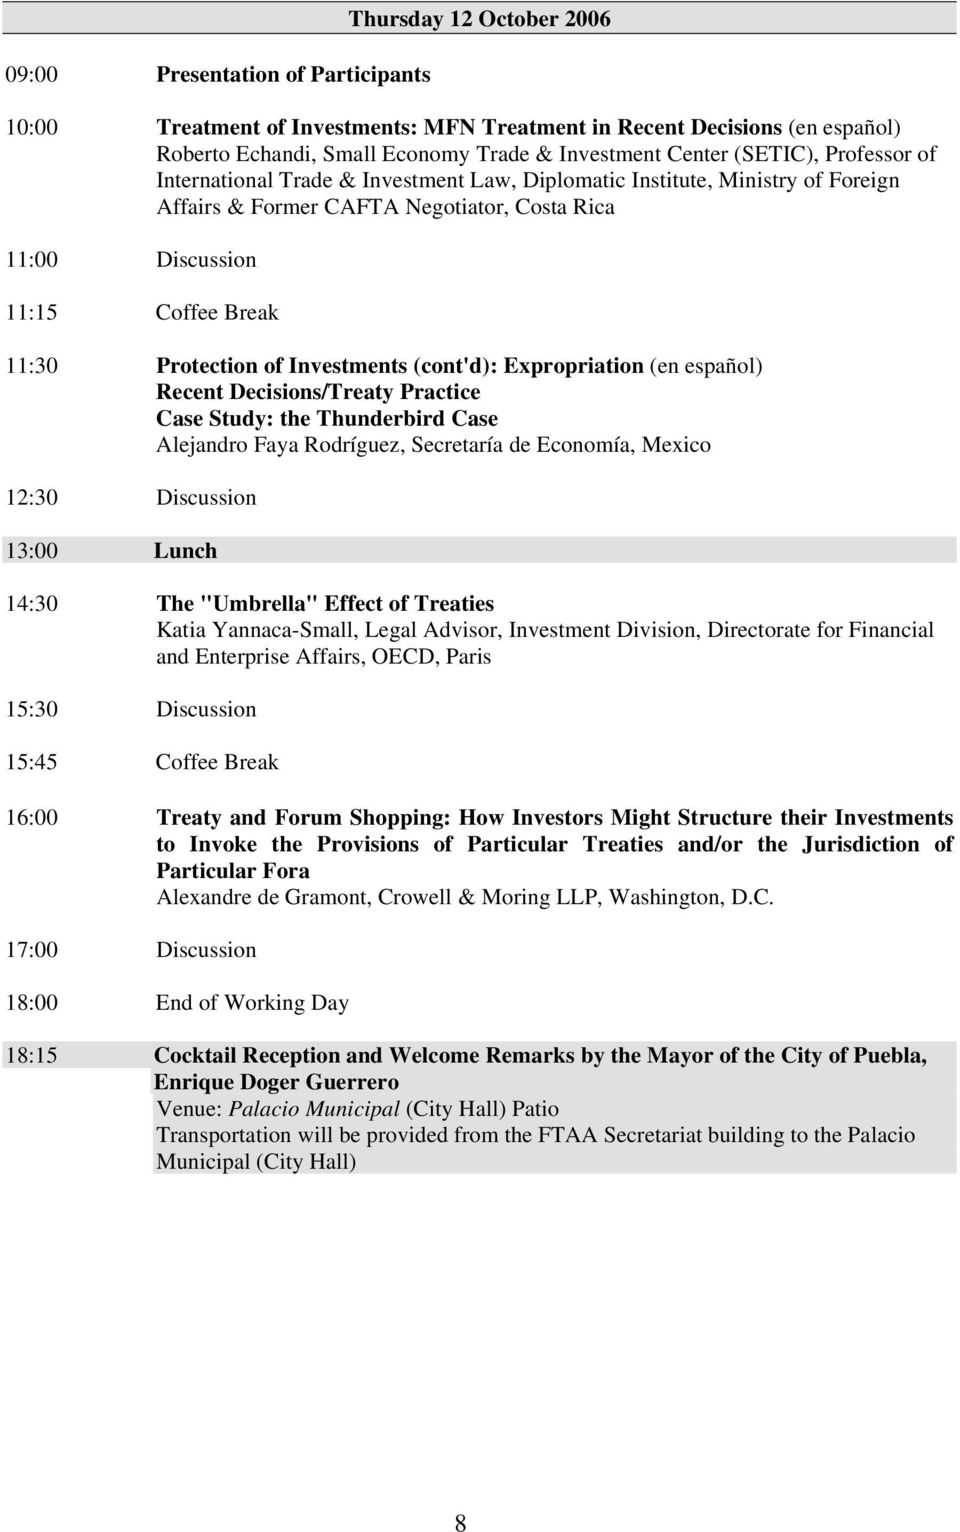 Protection of Investments (cont'd): Expropriation (en español) Recent Decisions/Treaty Practice Case Study: the Thunderbird Case Alejandro Faya Rodríguez, Secretaría de Economía, Mexico 12:30